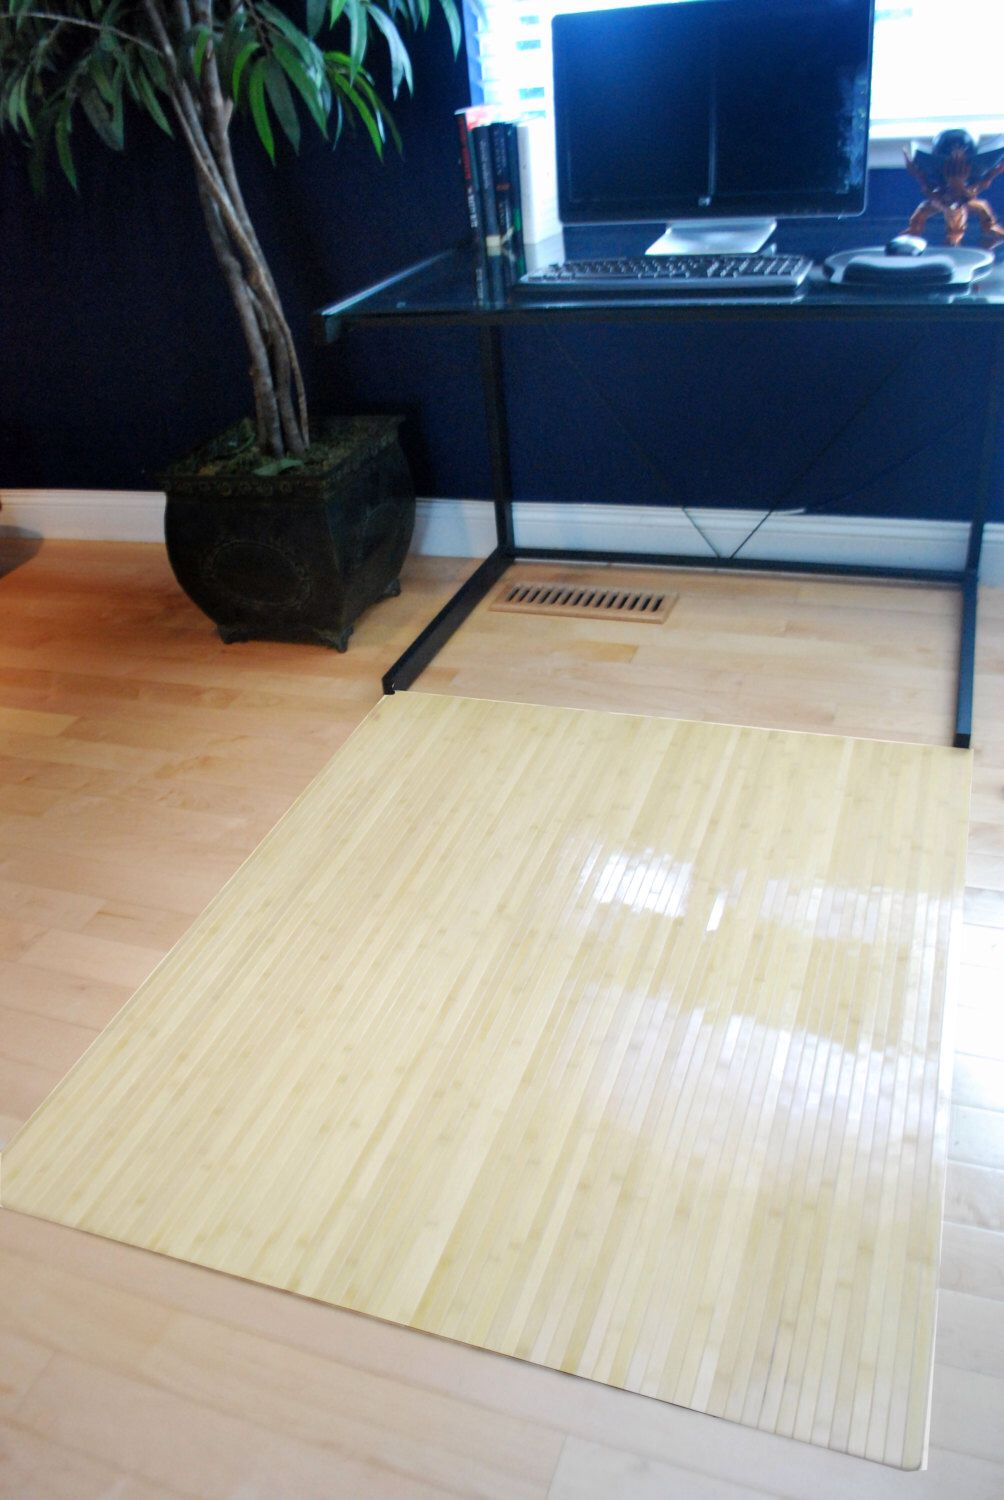 Gallery Of Natural Birch Wood Bamboo Chair Mat Office Floor Hard Protector Desk Chairmat Hardwood Laminate With Protectors